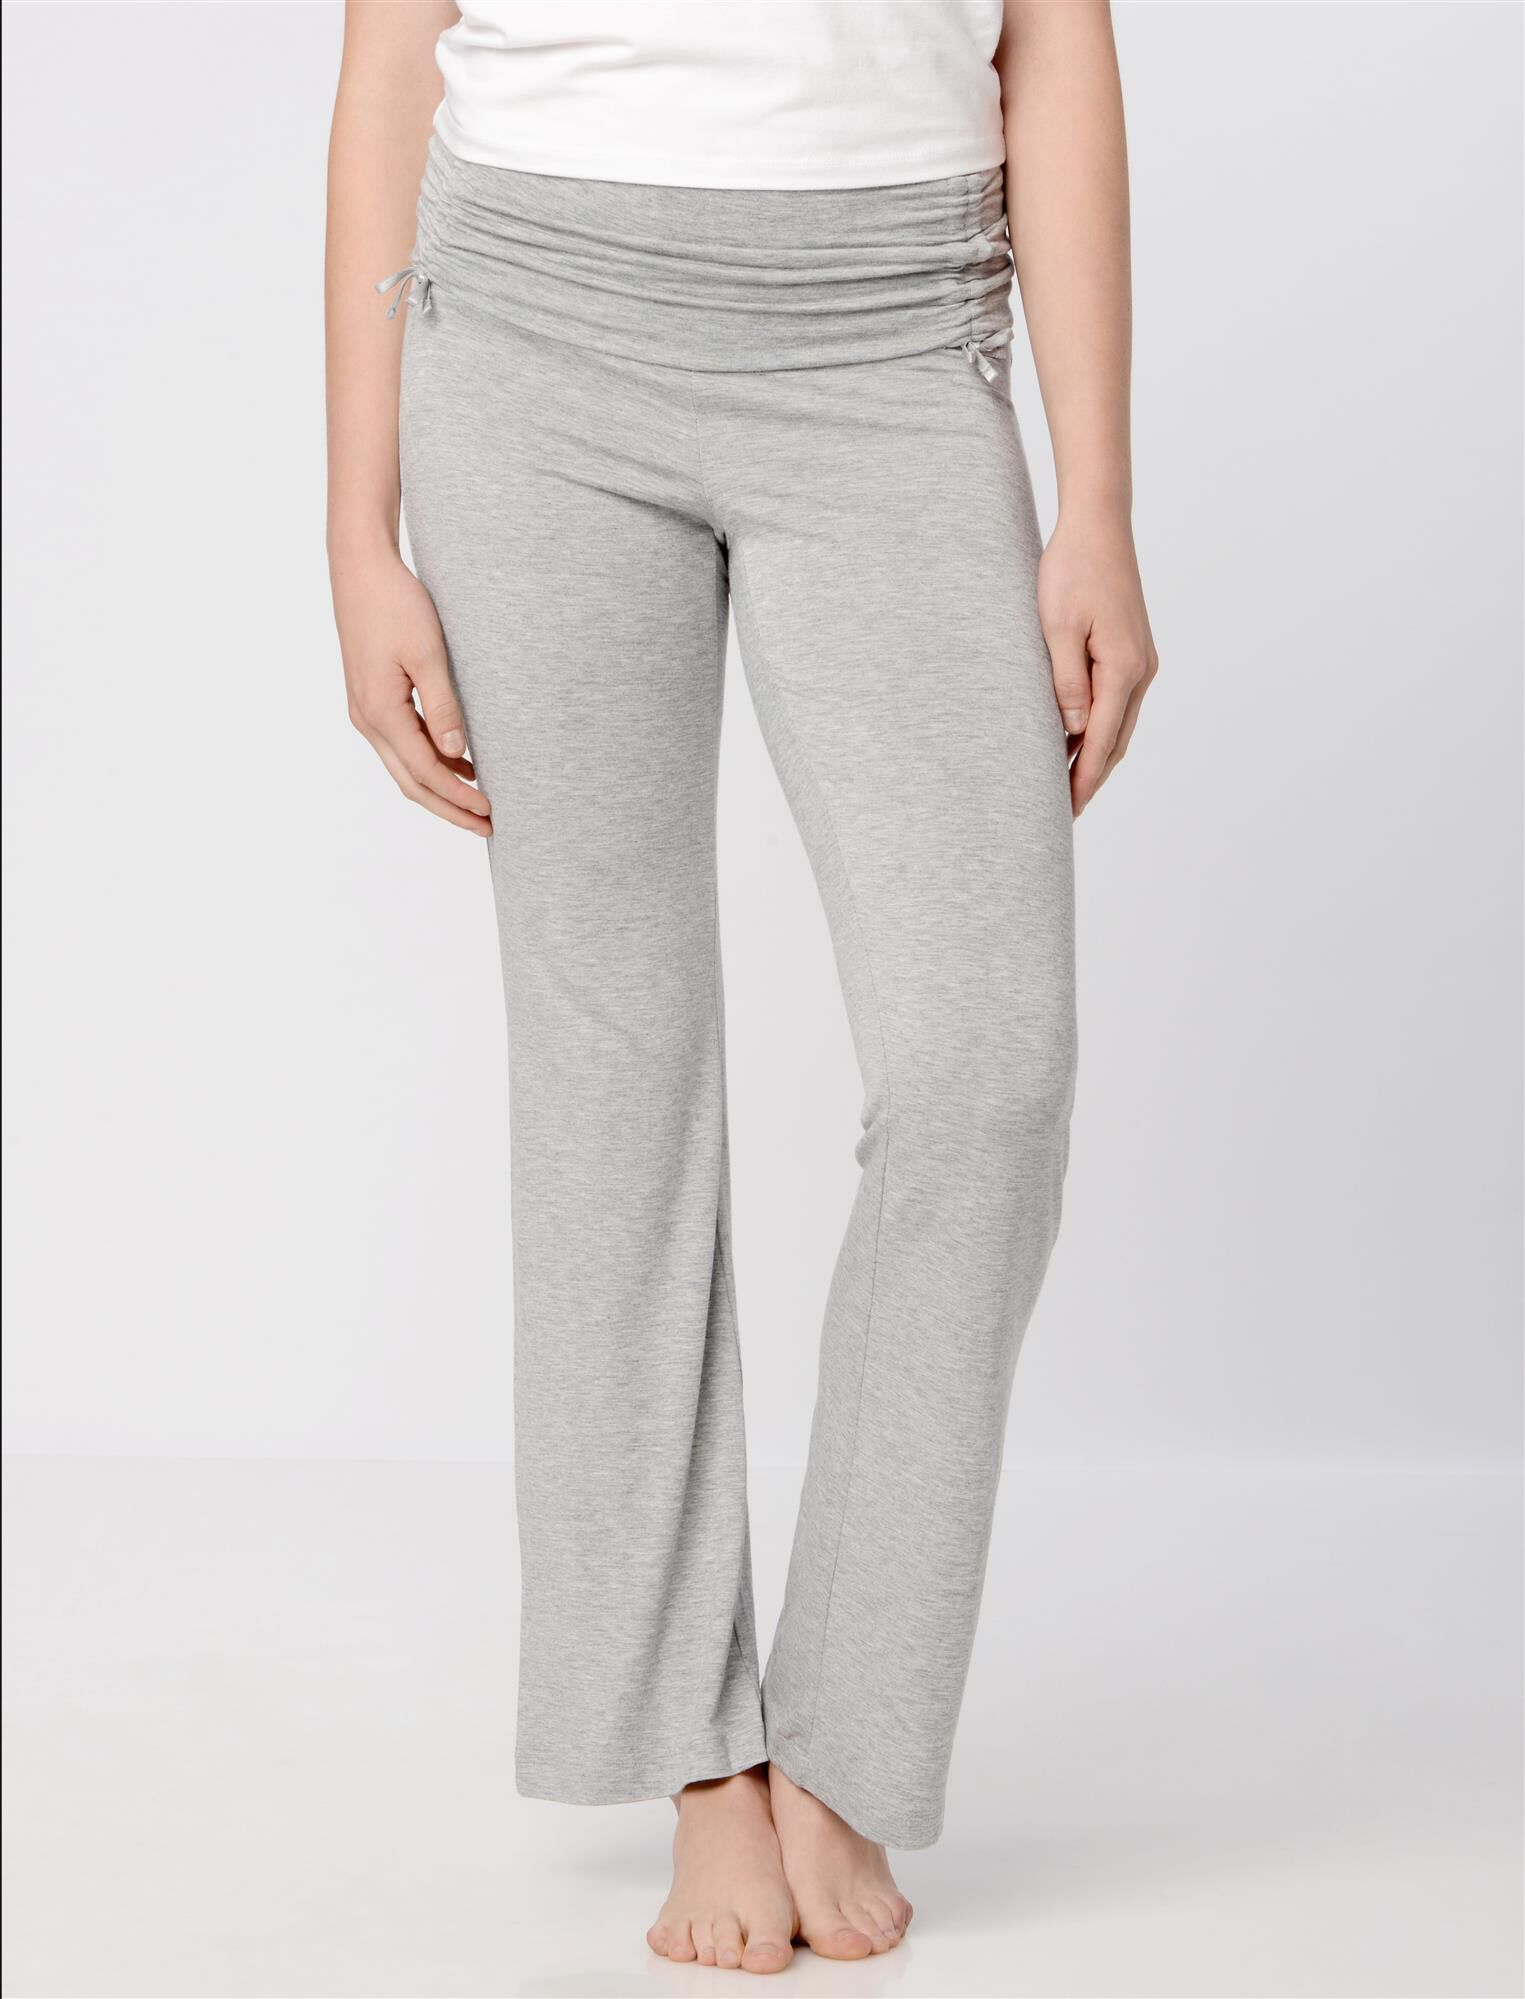 Bow Detail Maternity Sleep Pants- Solids